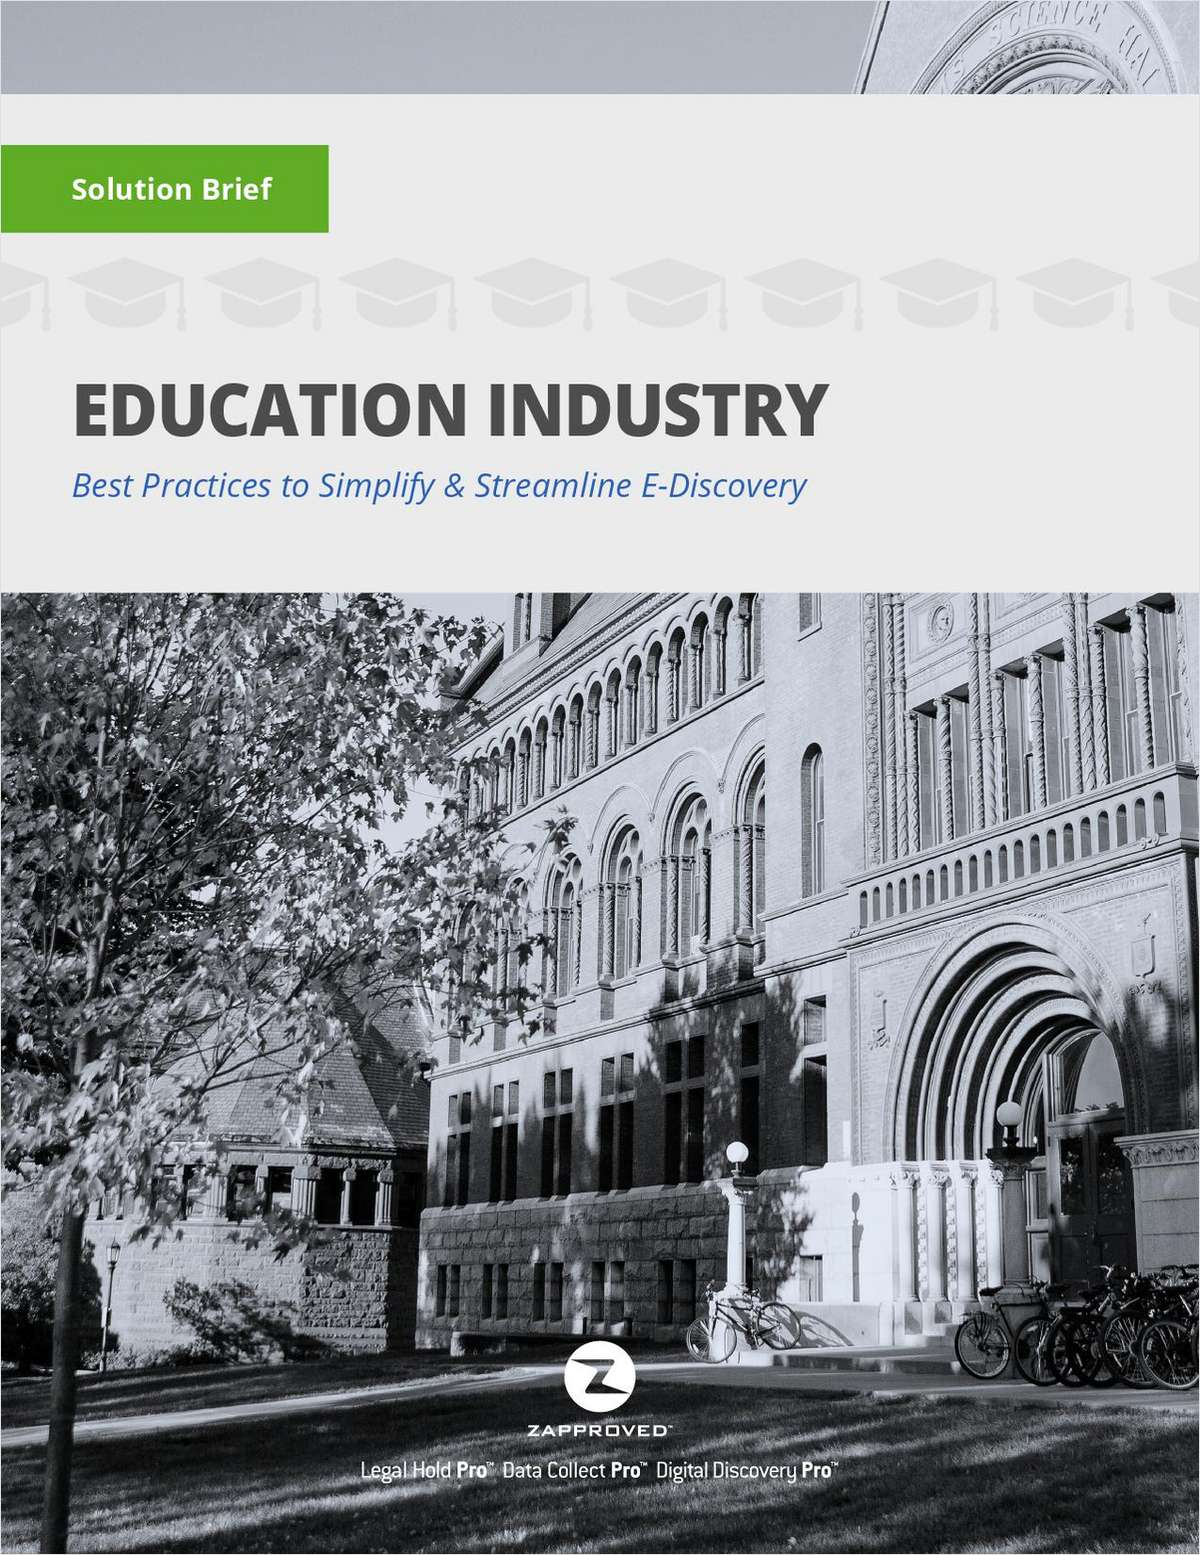 2017 Solution Brief: Higher Education